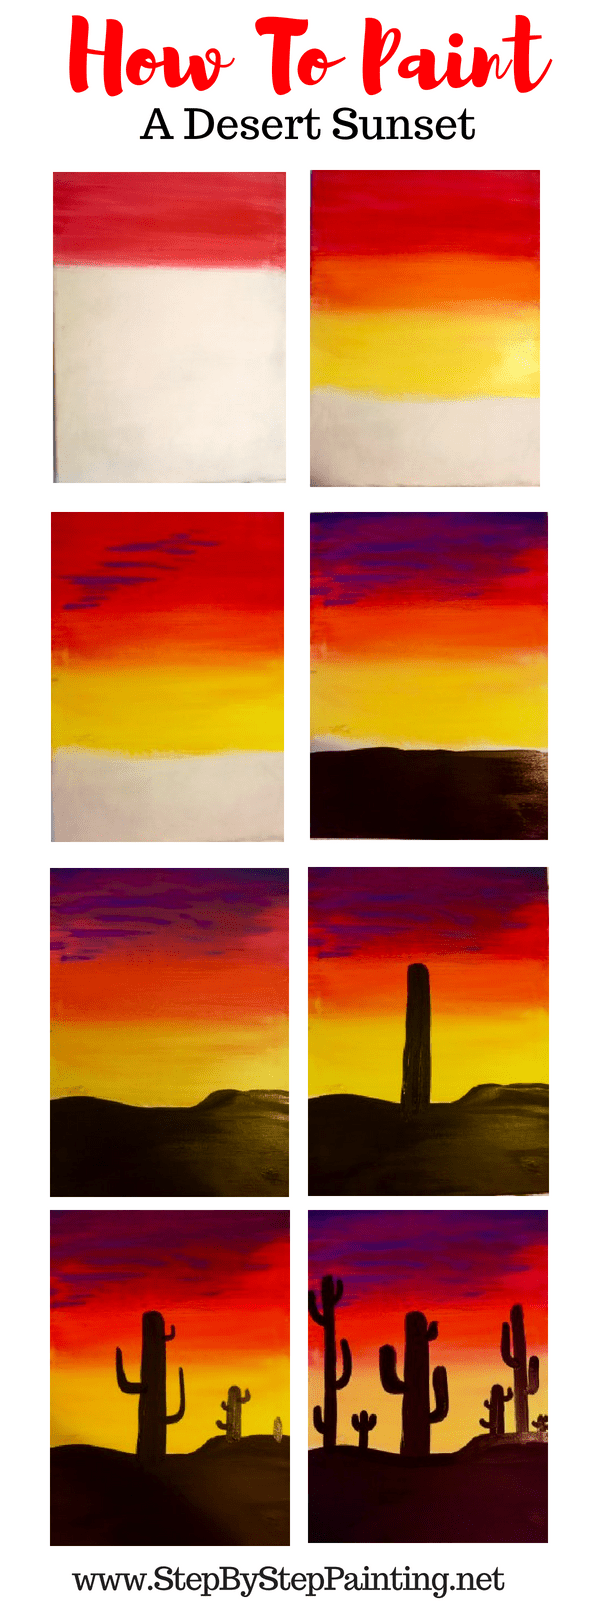 How To Paint A Cactus Silhouette Sunset Step By Step Acrylic